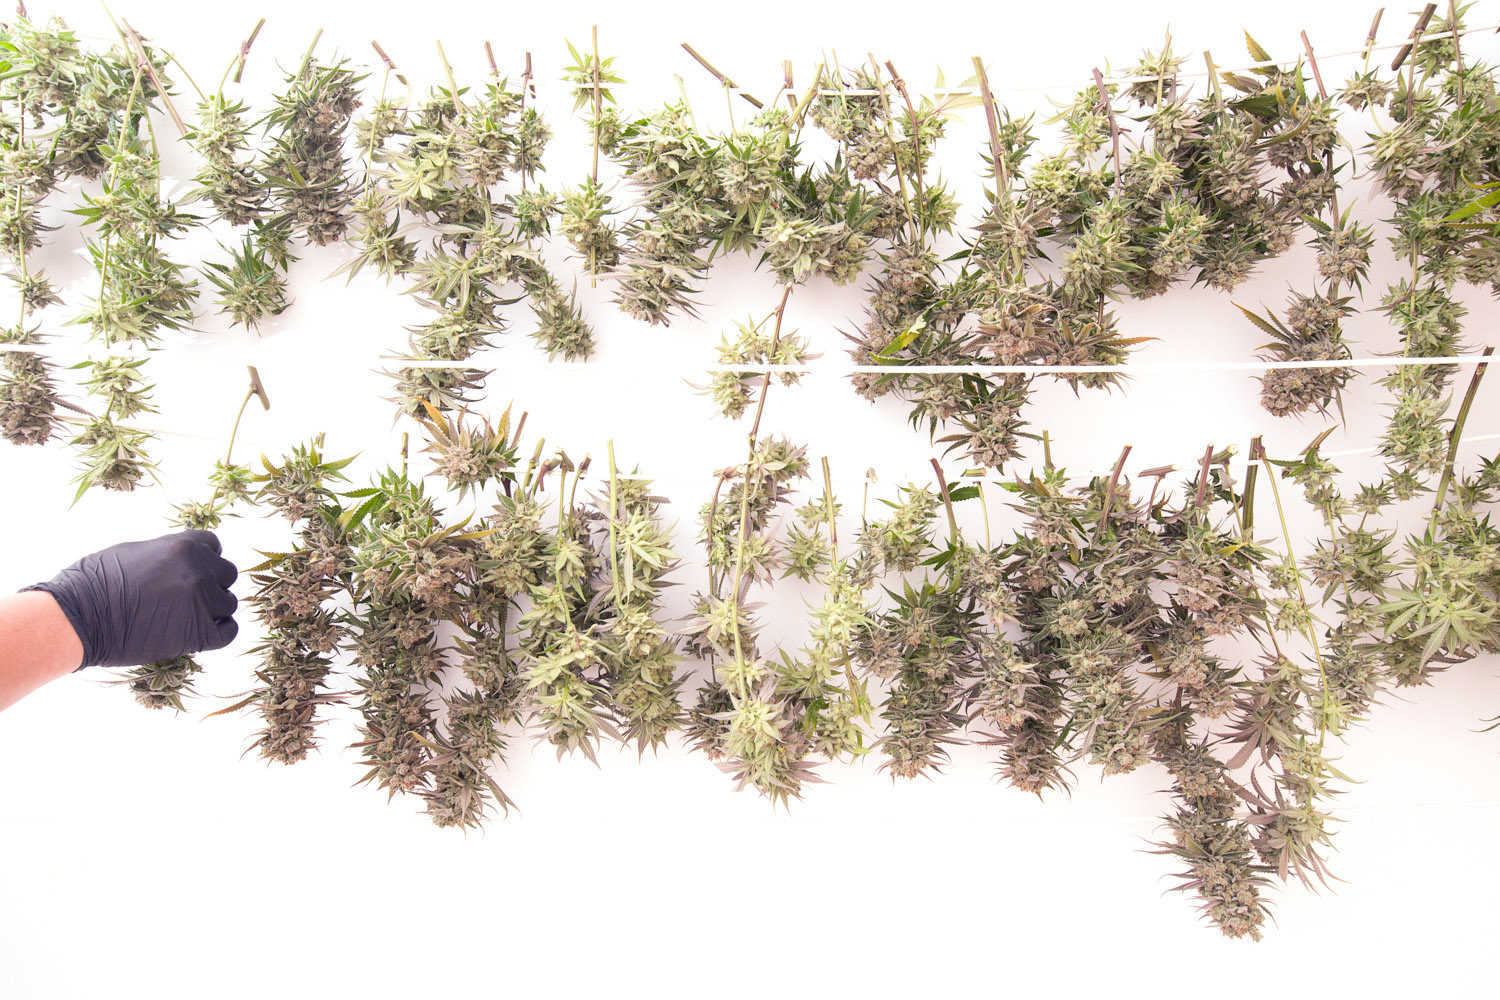 marijuana buds drying